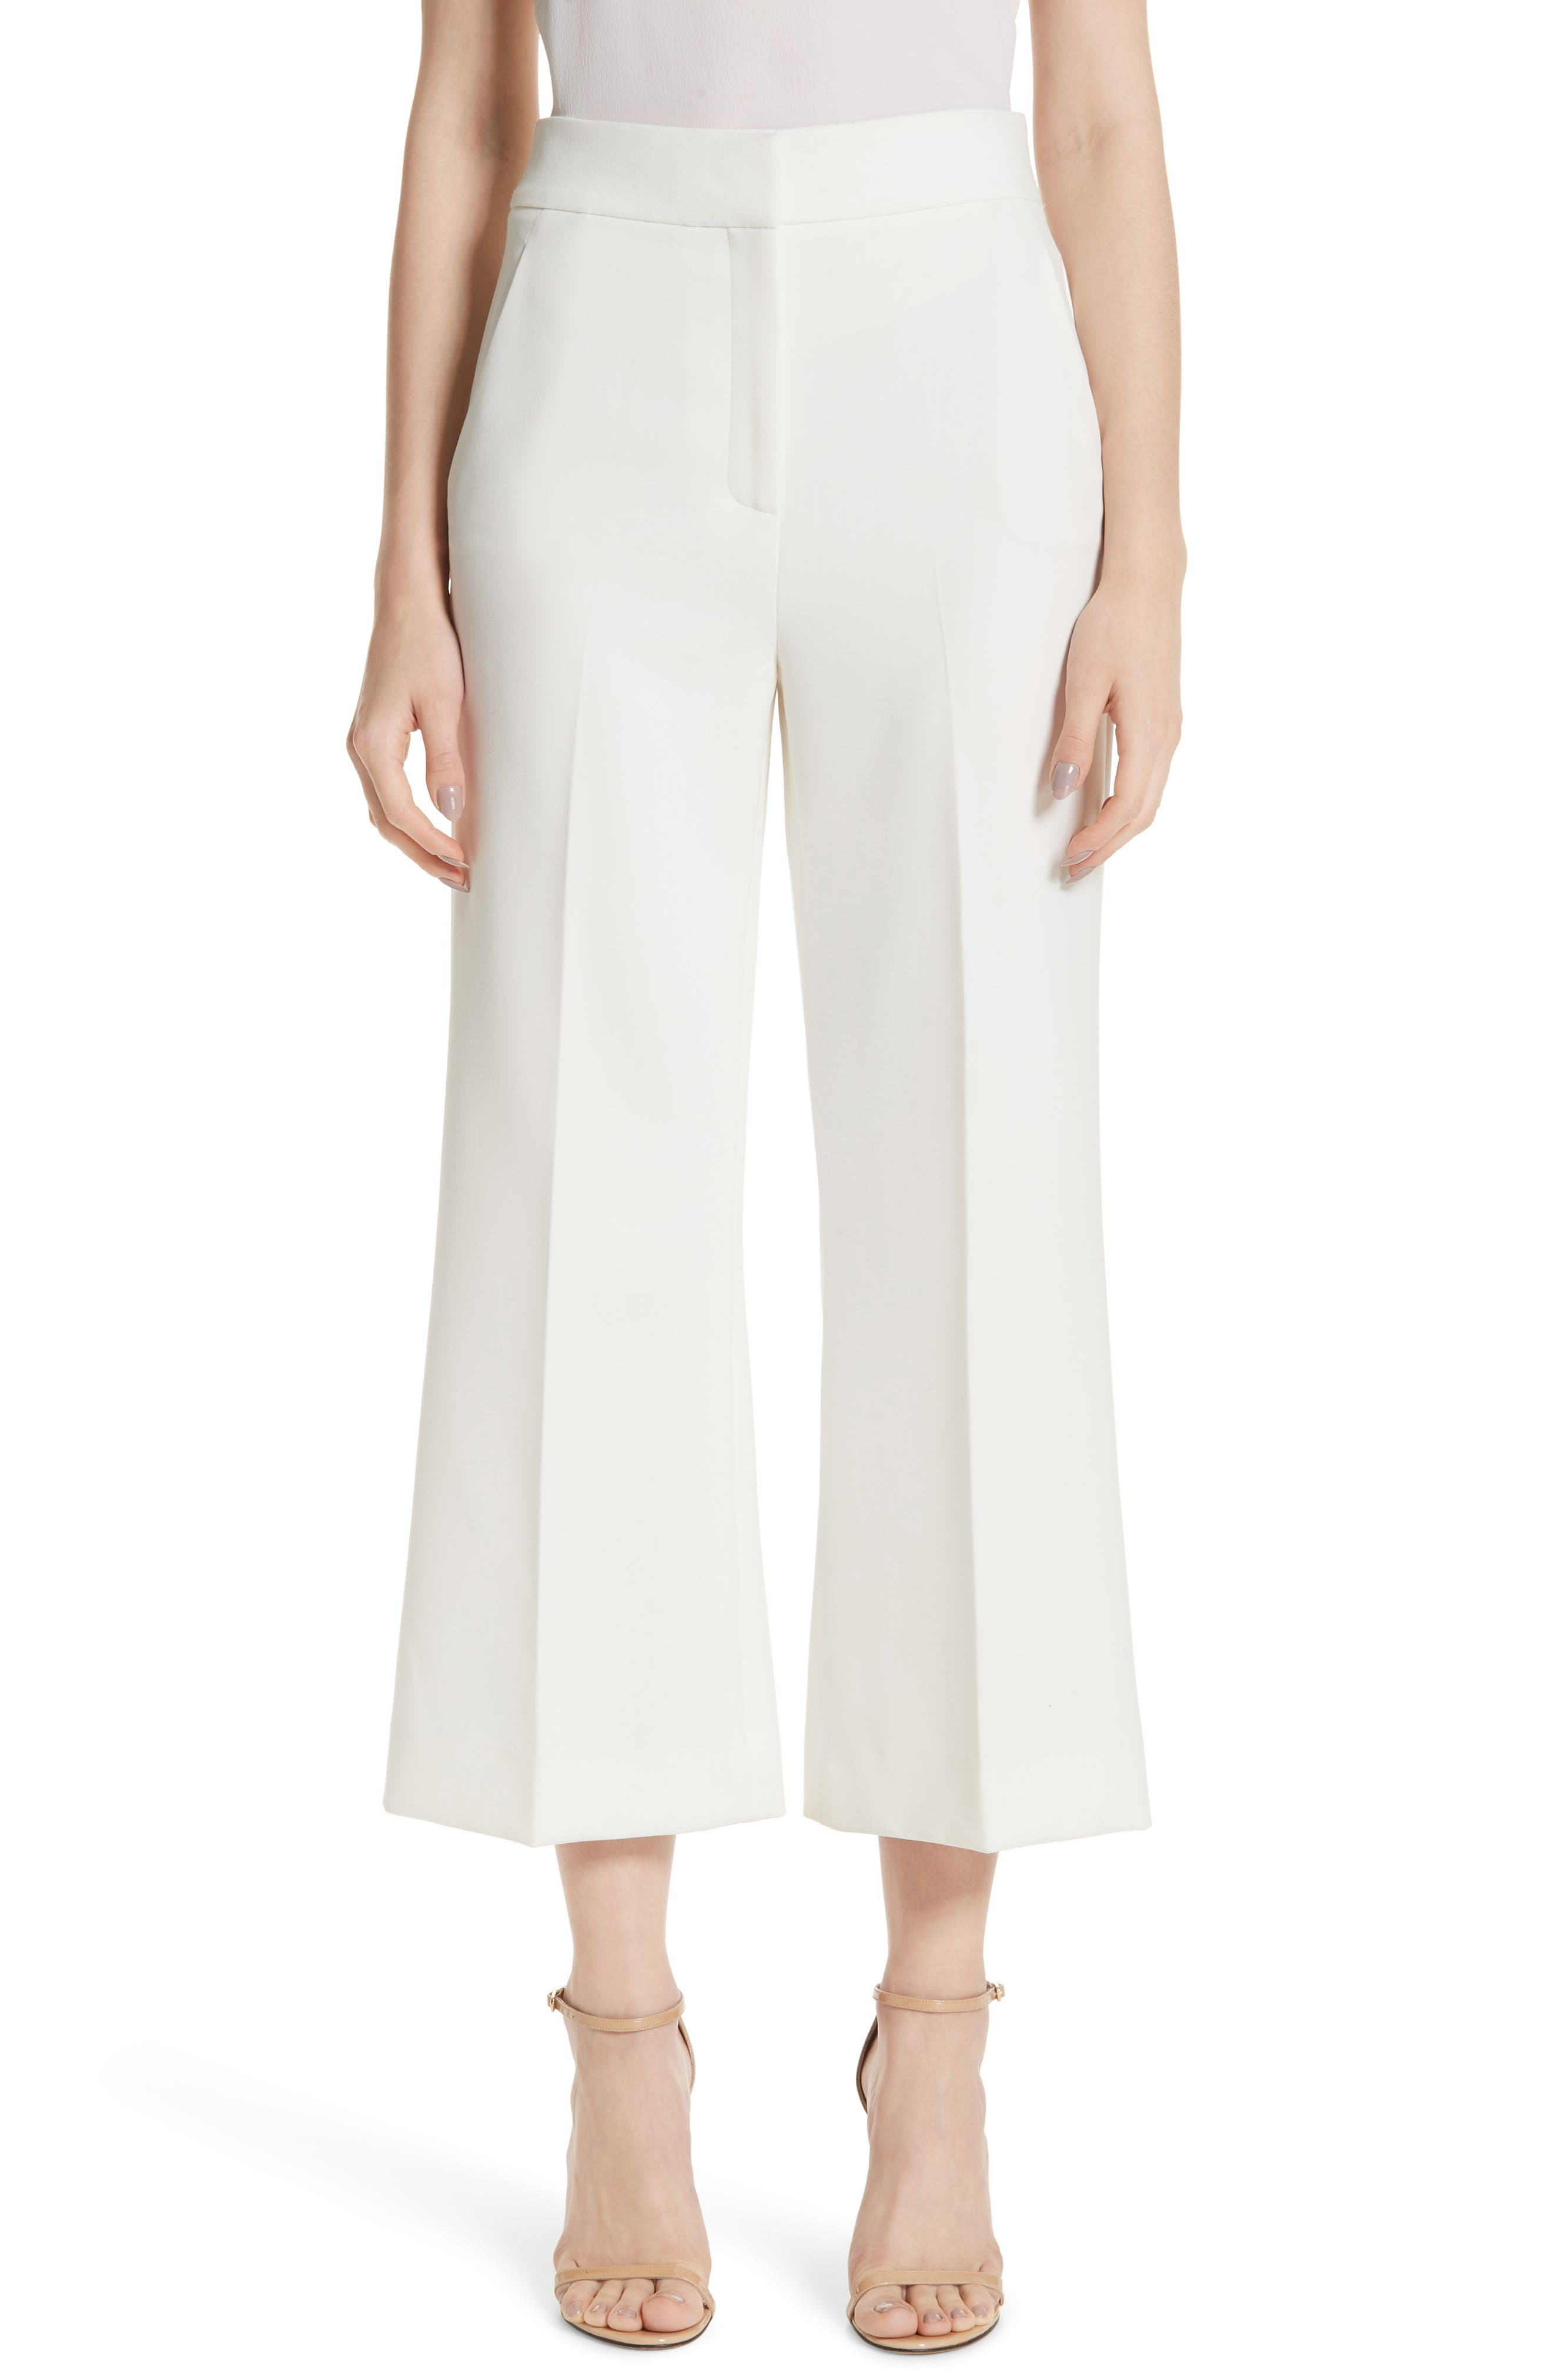 St. John Collection Bella Double Weave Crop Flare Pants, White